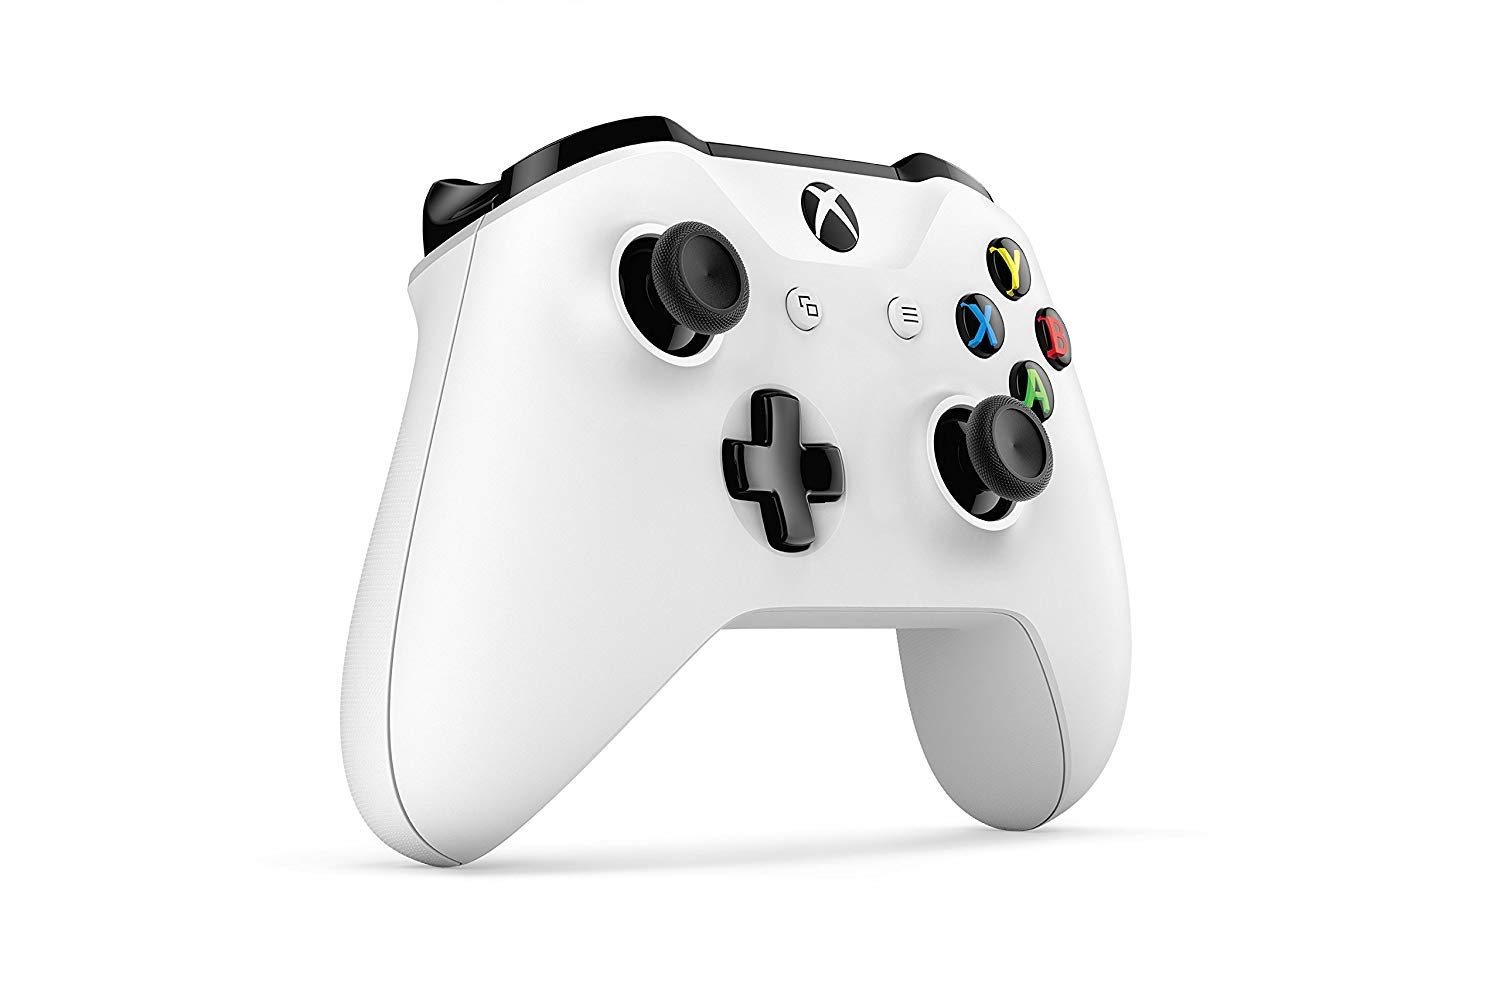 Microsoft Xbox One S - Consola 1 TB con Playerunknowns Battlegrounds + Mando Inalámbrico, Blanco (PC, Xbox One S): Amazon.es: Videojuegos